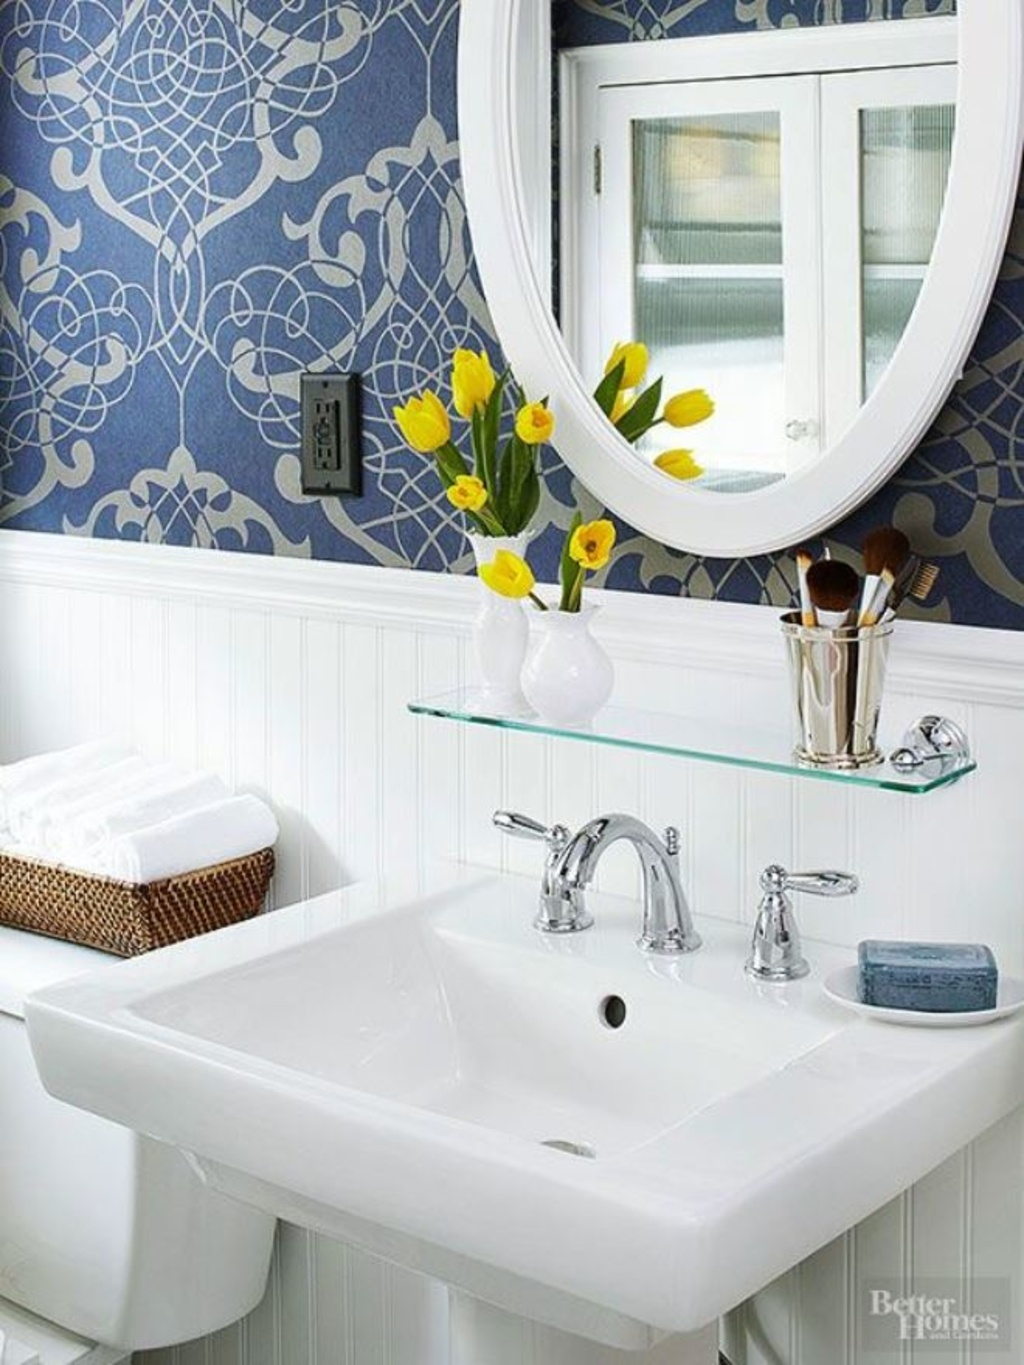 7 Genius Pedestal Sink Storage Ideas For Your Home